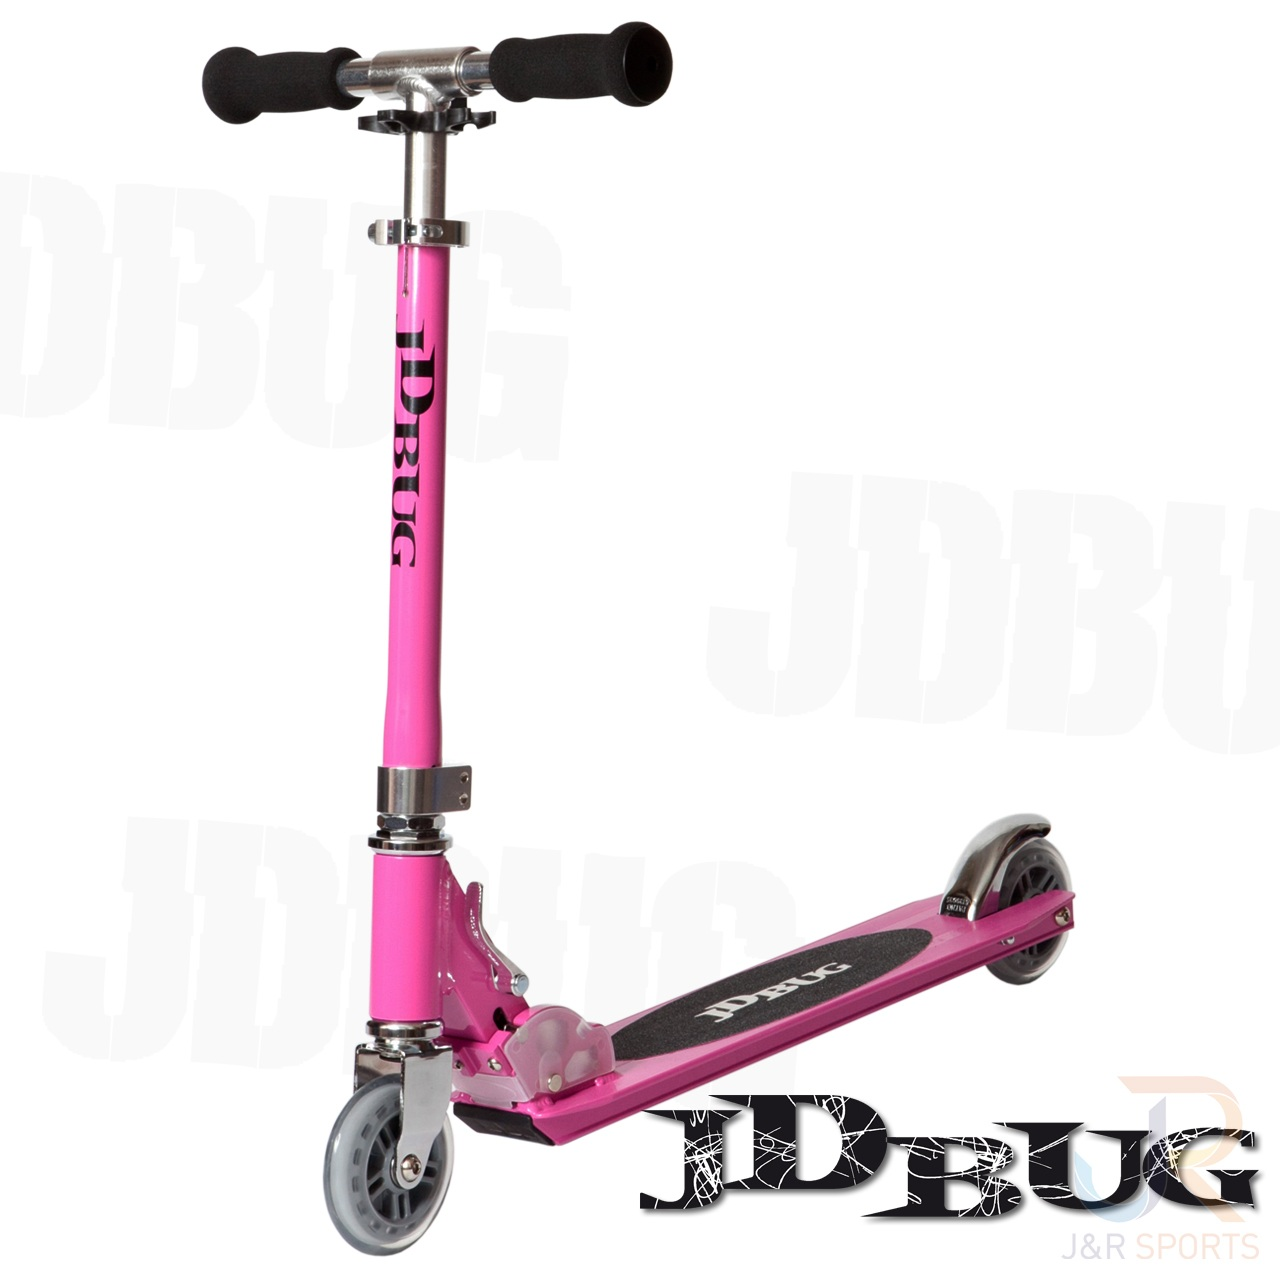 jd bug street rose